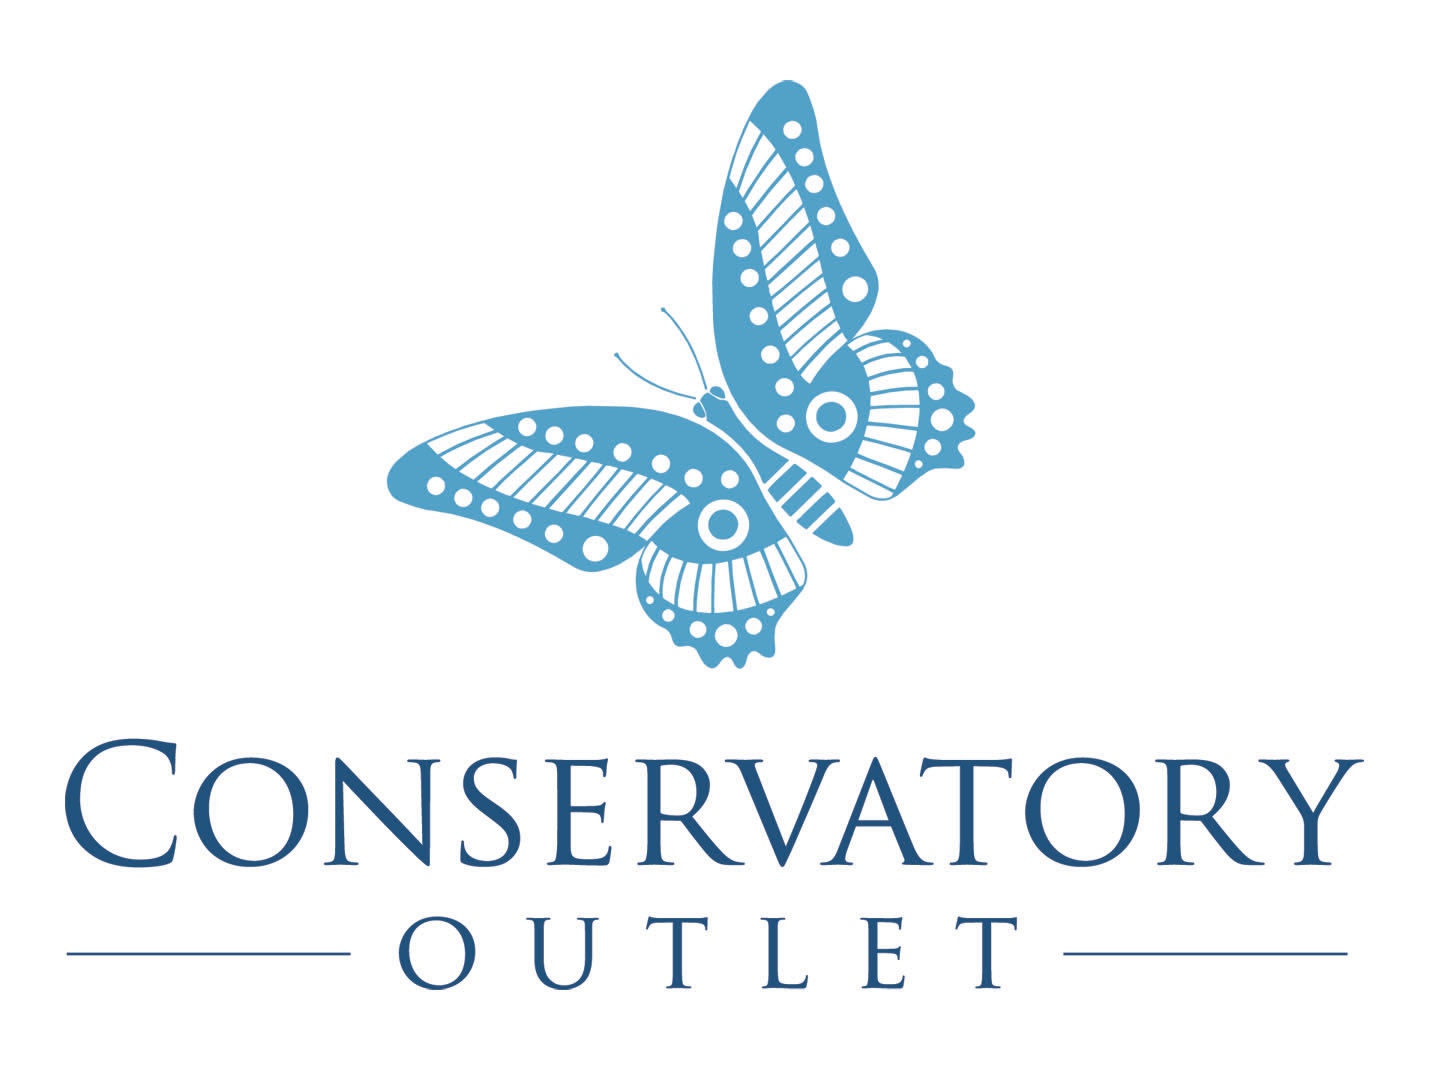 Conservatory Outlet Limited